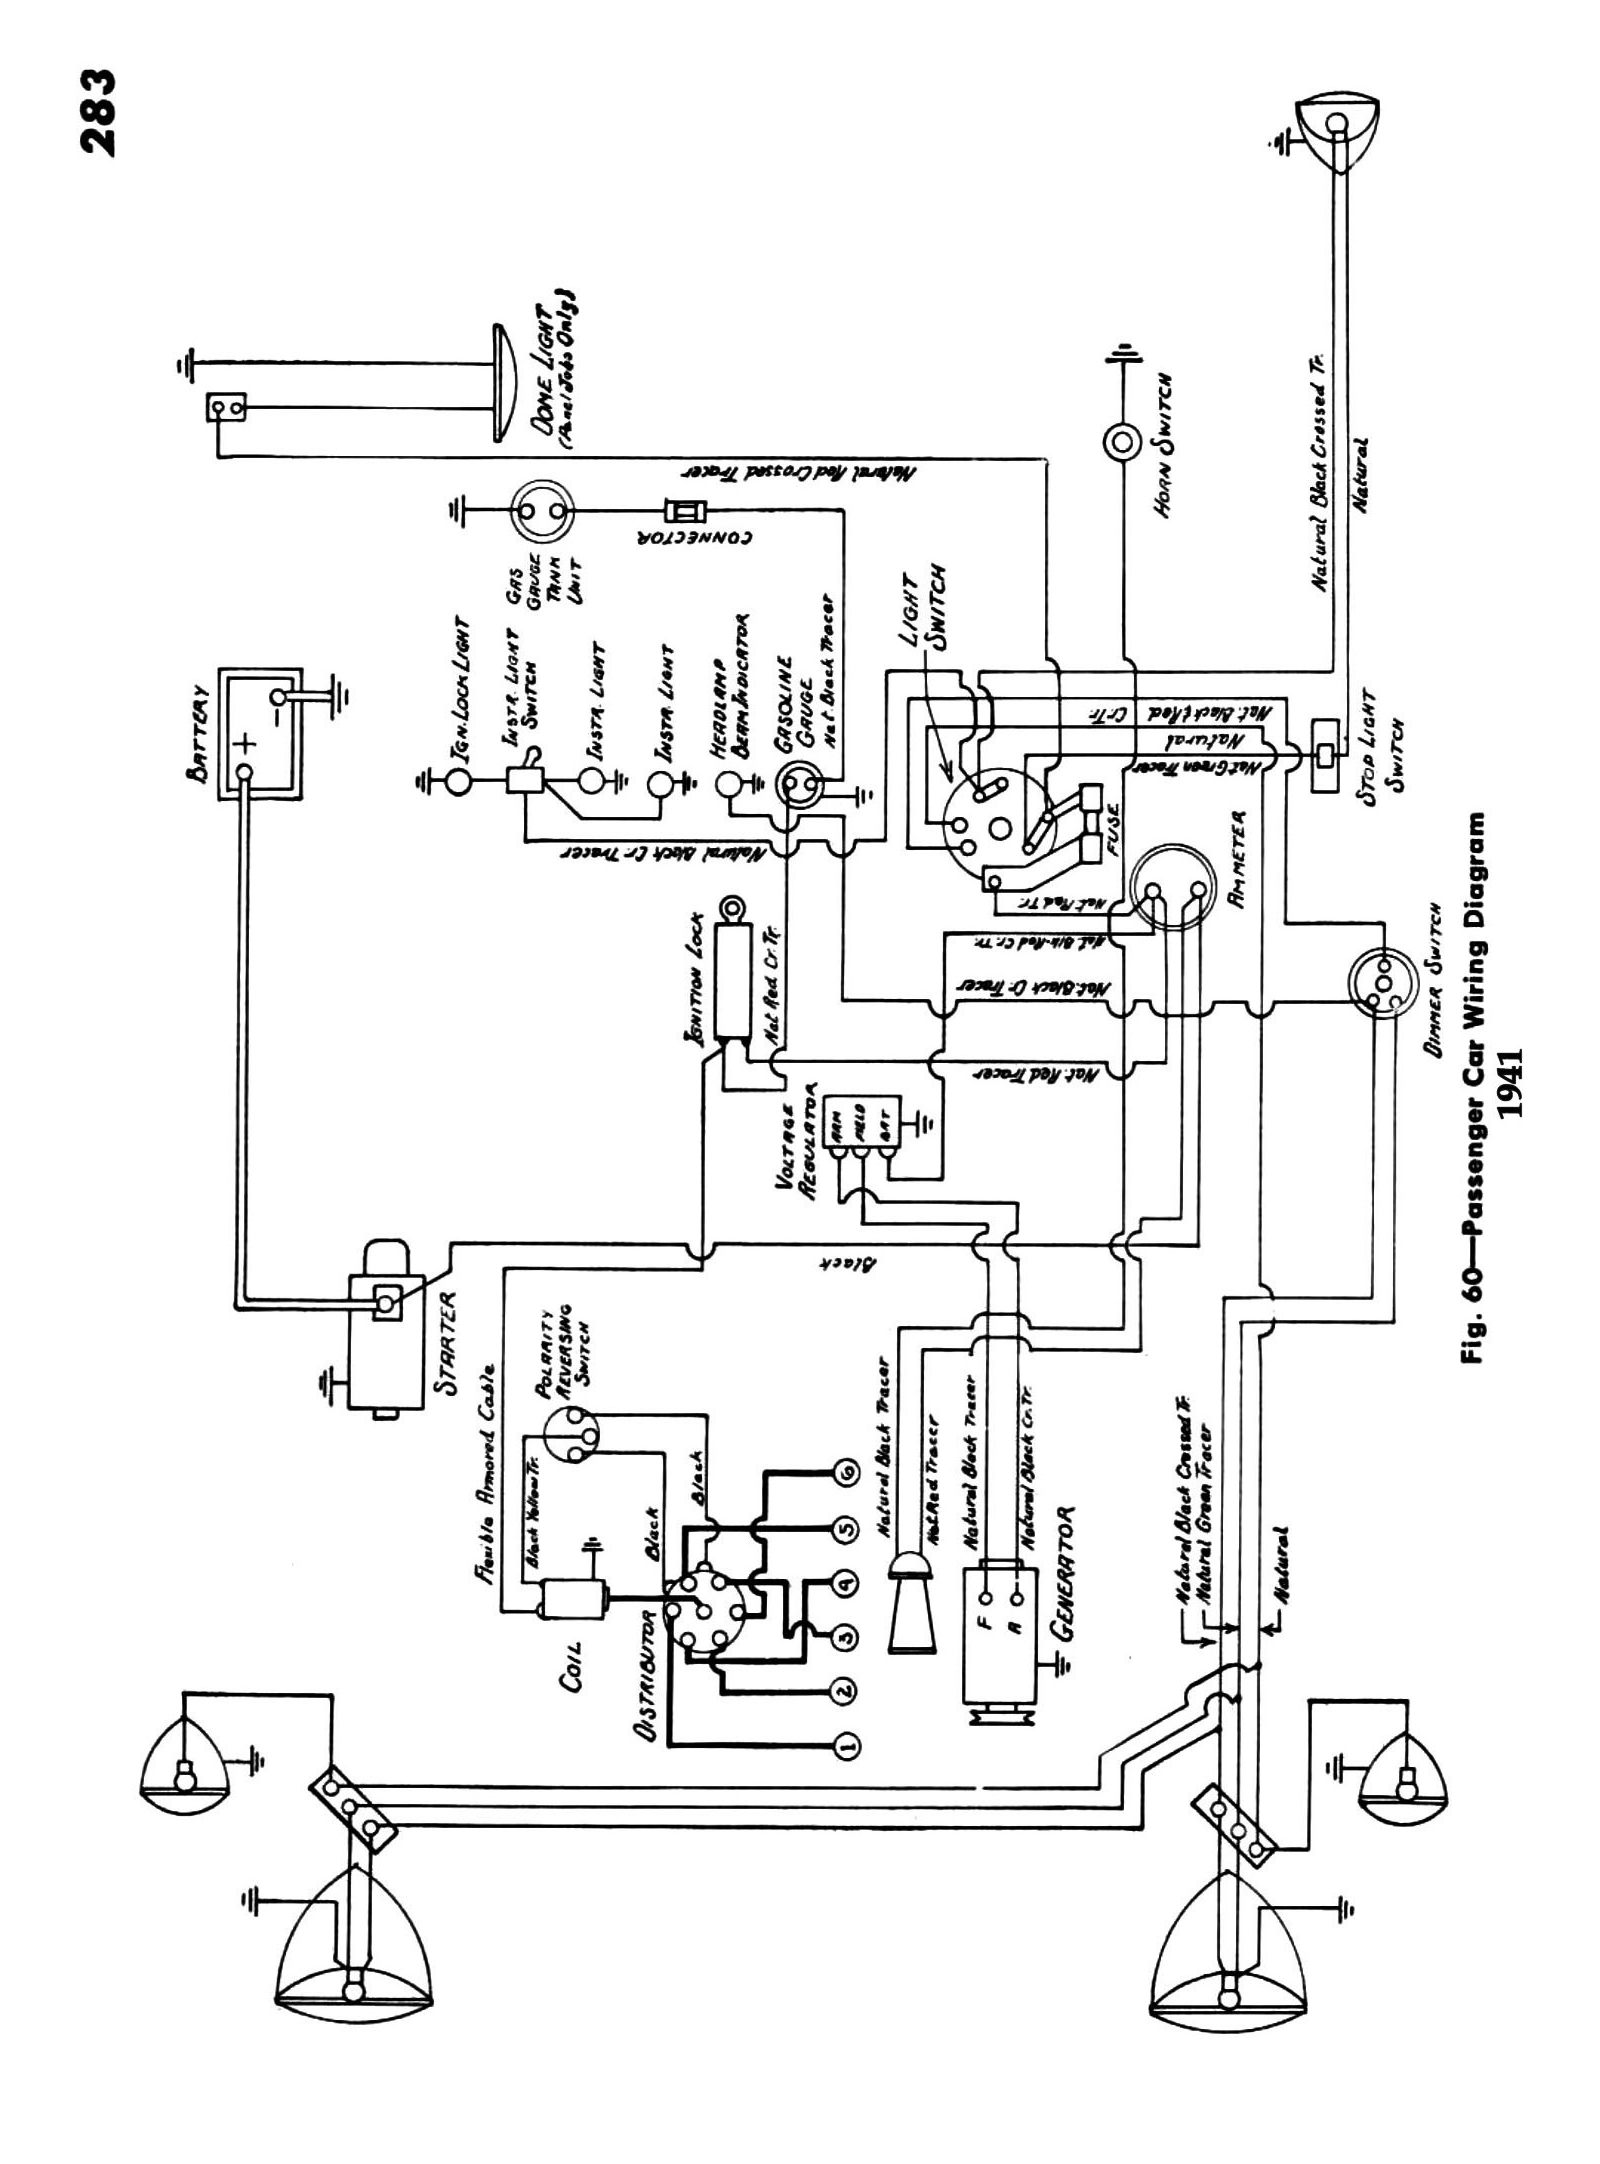 41csm283 chevy wiring diagrams Coil and Distributor Wiring Diagram at sewacar.co